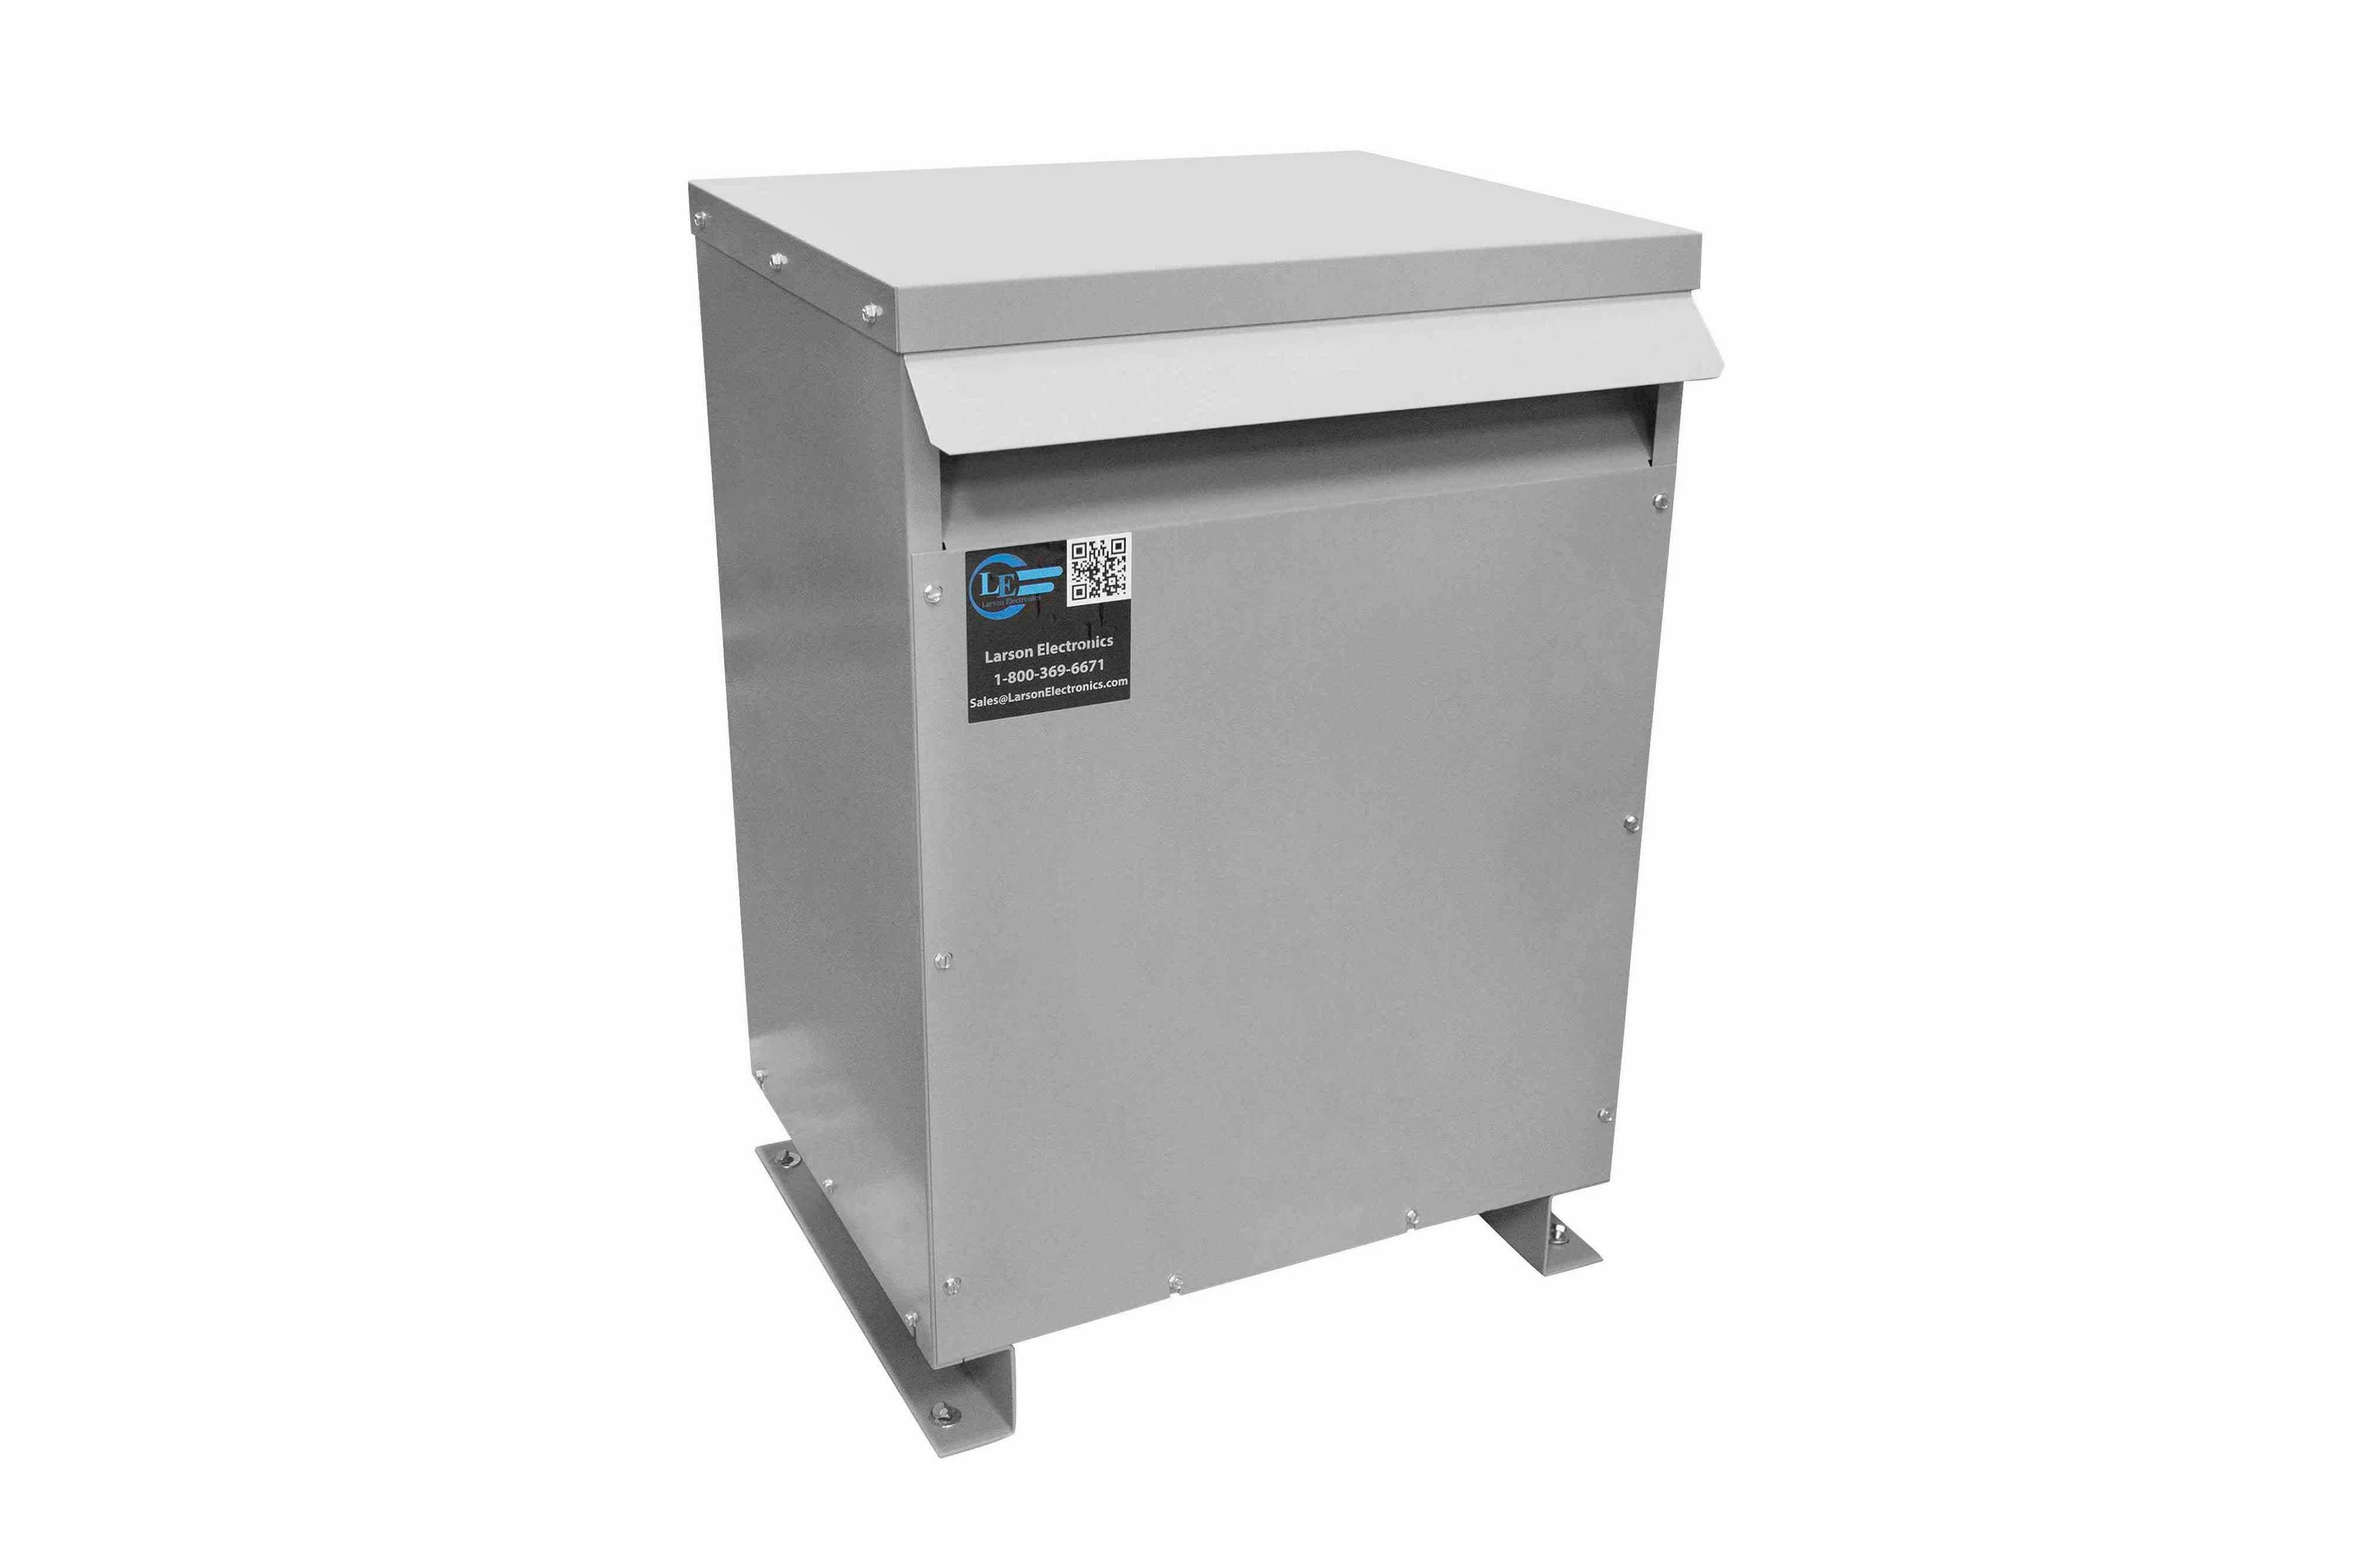 65 kVA 3PH Isolation Transformer, 415V Wye Primary, 240V/120 Delta Secondary, N3R, Ventilated, 60 Hz